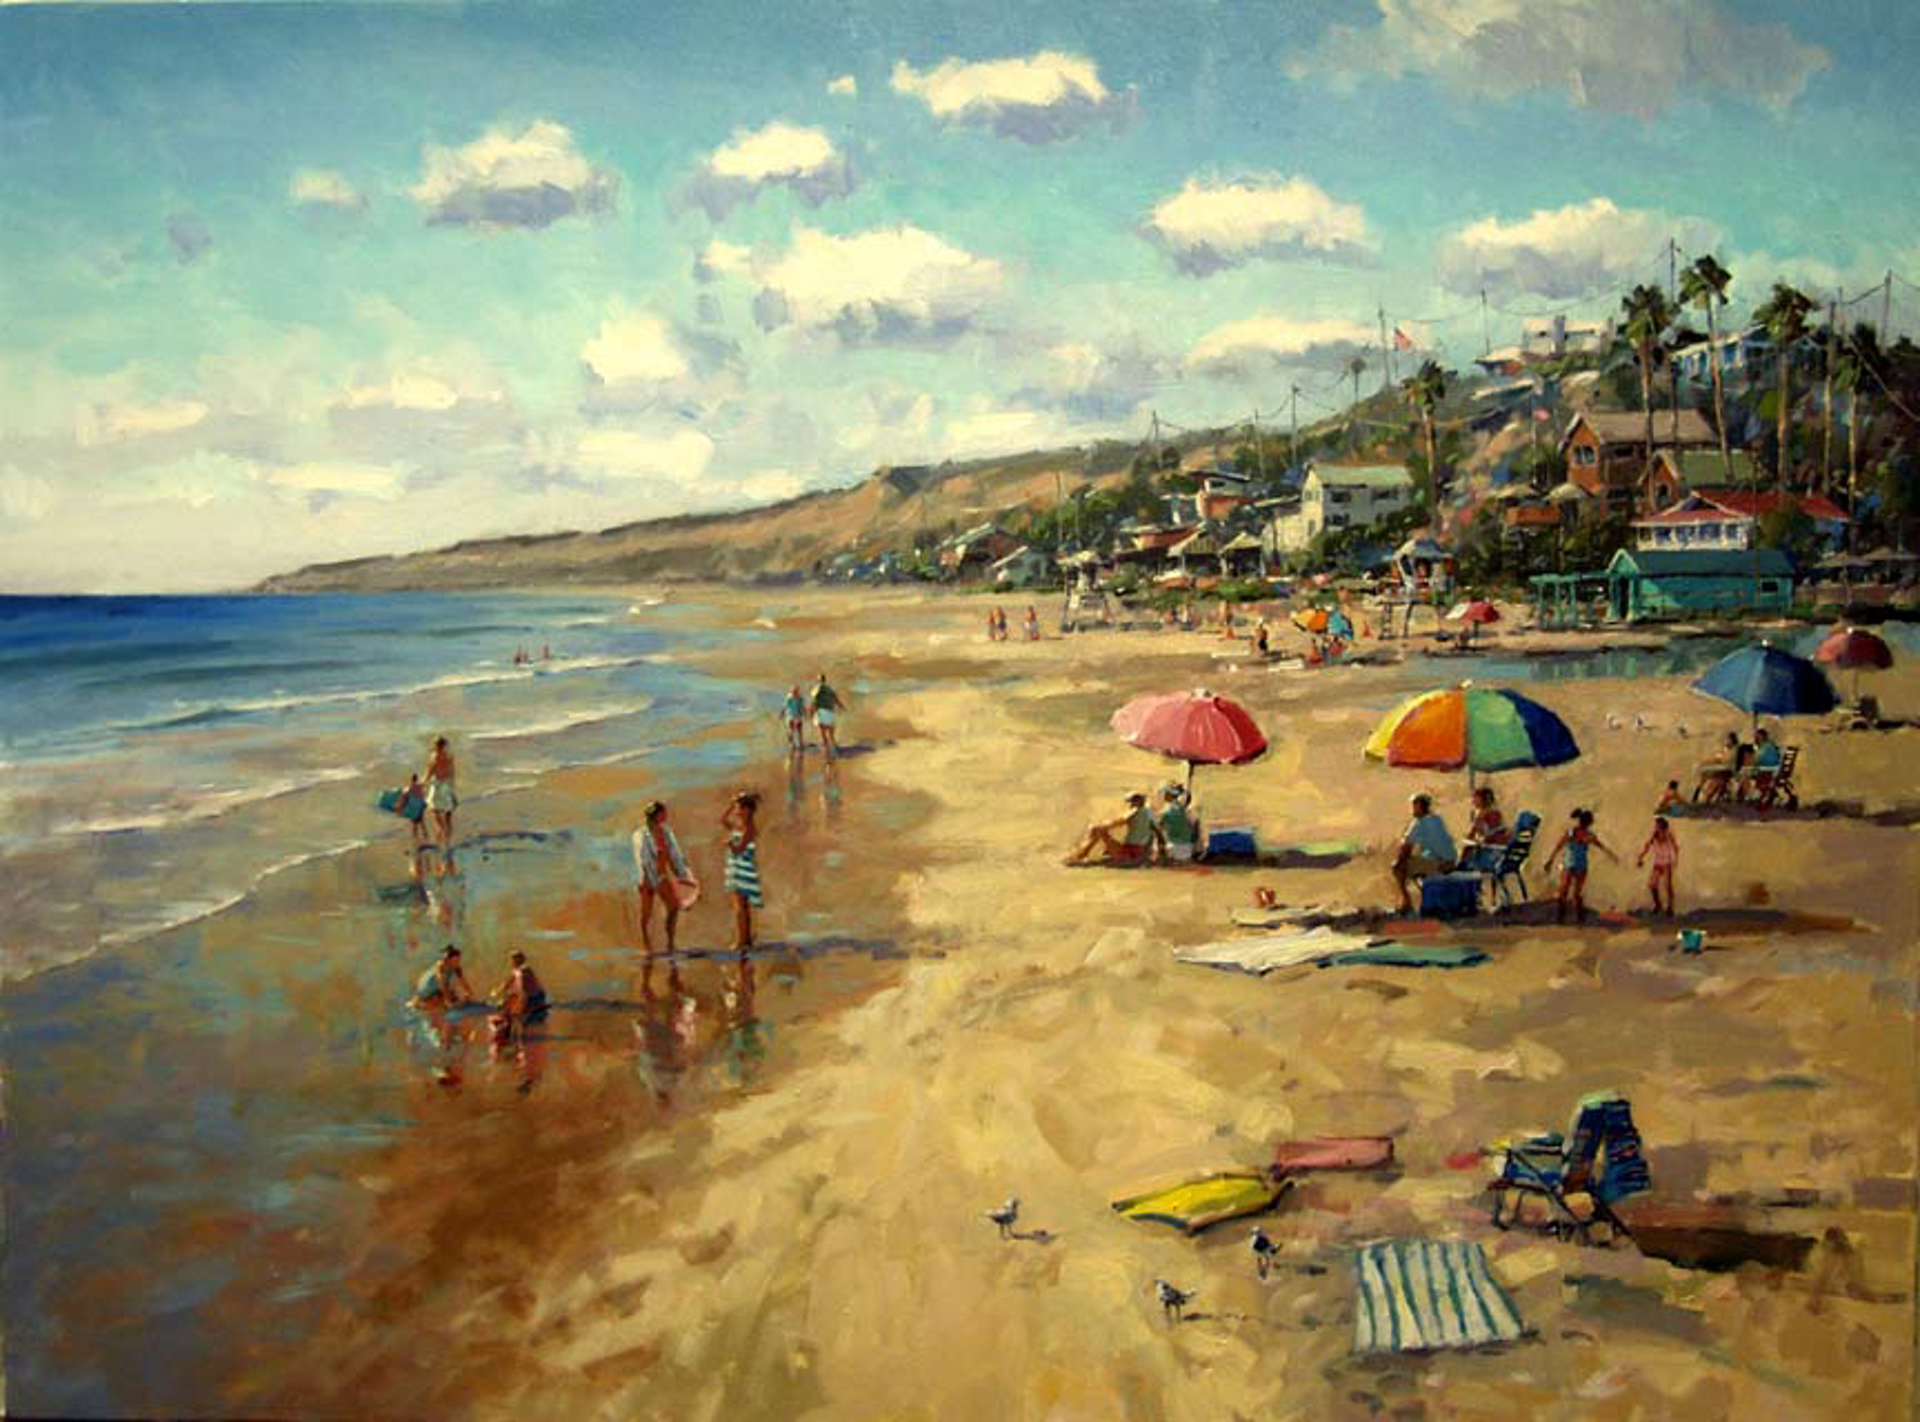 Fun In The Sun, Crystal Cove by Ronaldo Macedo